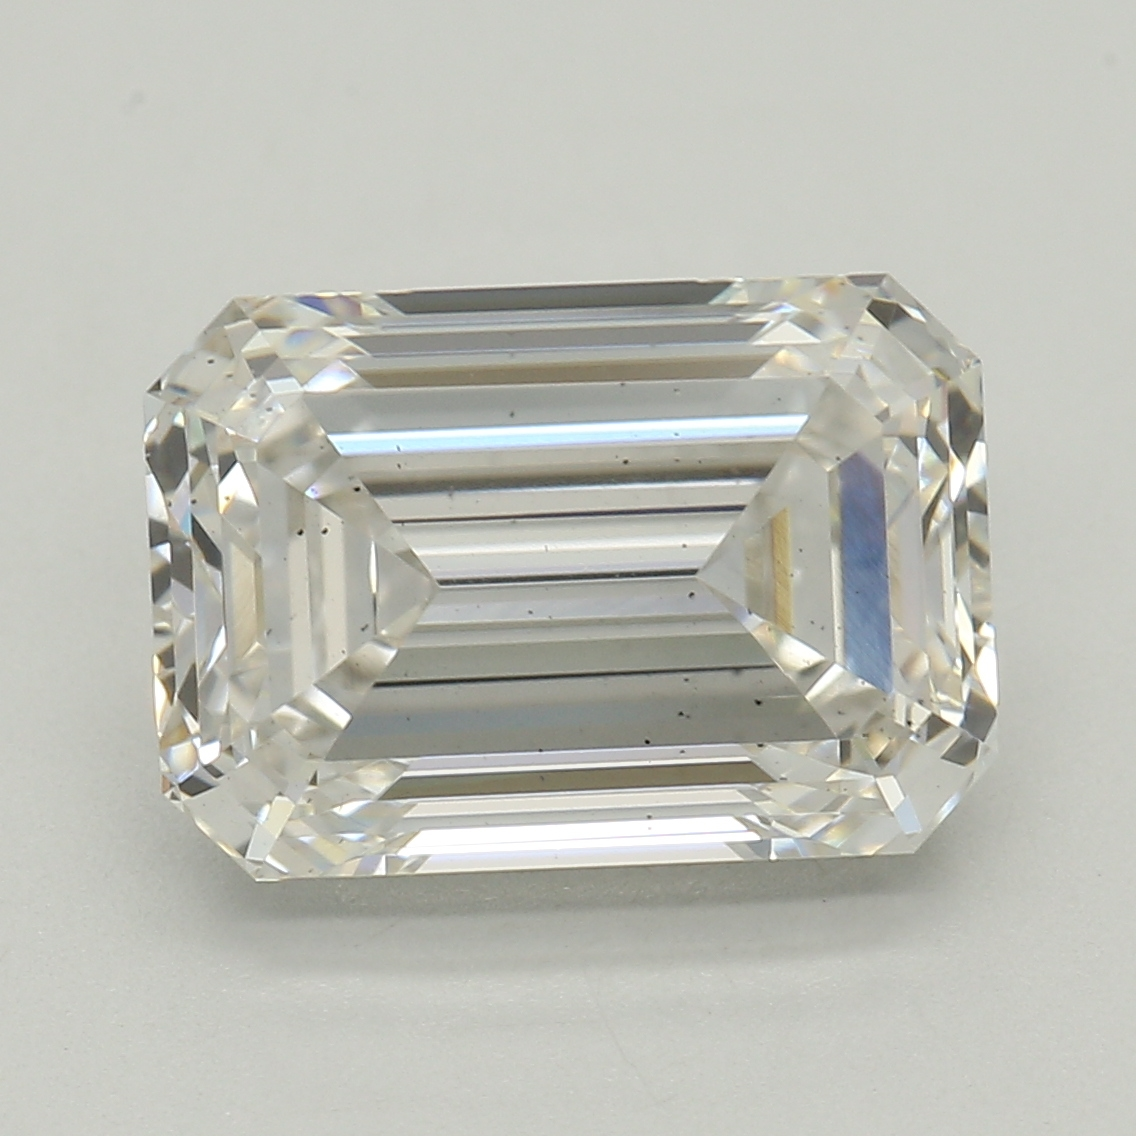 Emerald Cut 2.11 Carat I Color Si1 Clarity Sku Lg3735781